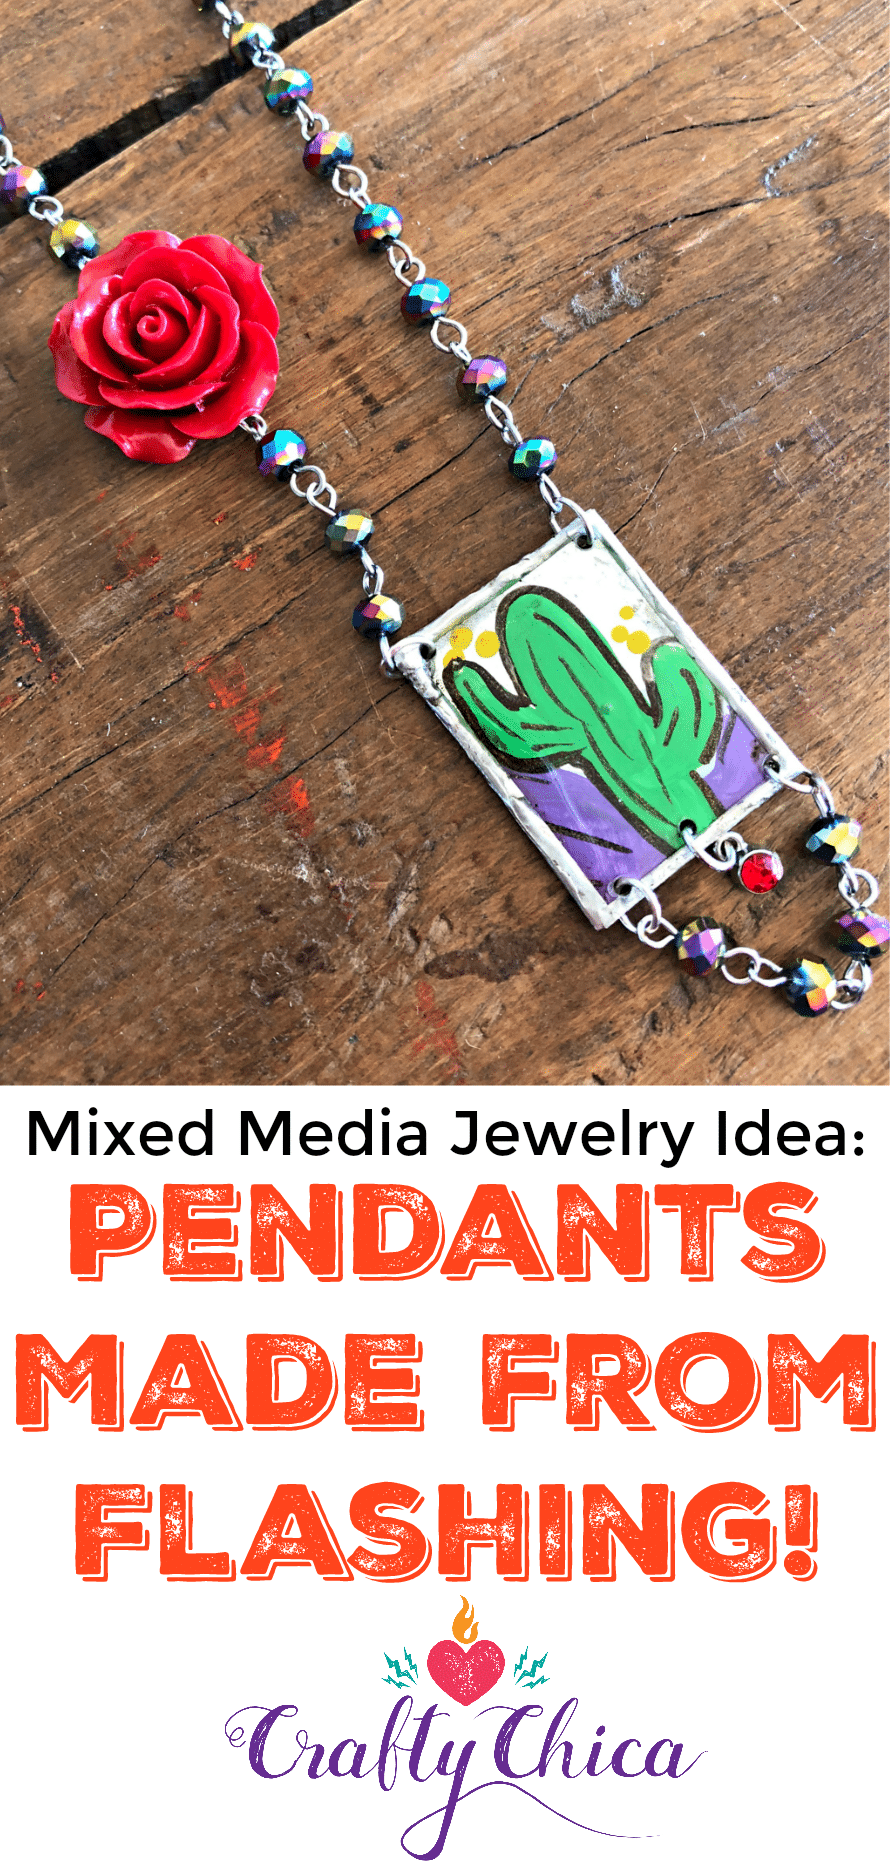 How to make jewelry from flashing, by CraftyChica.